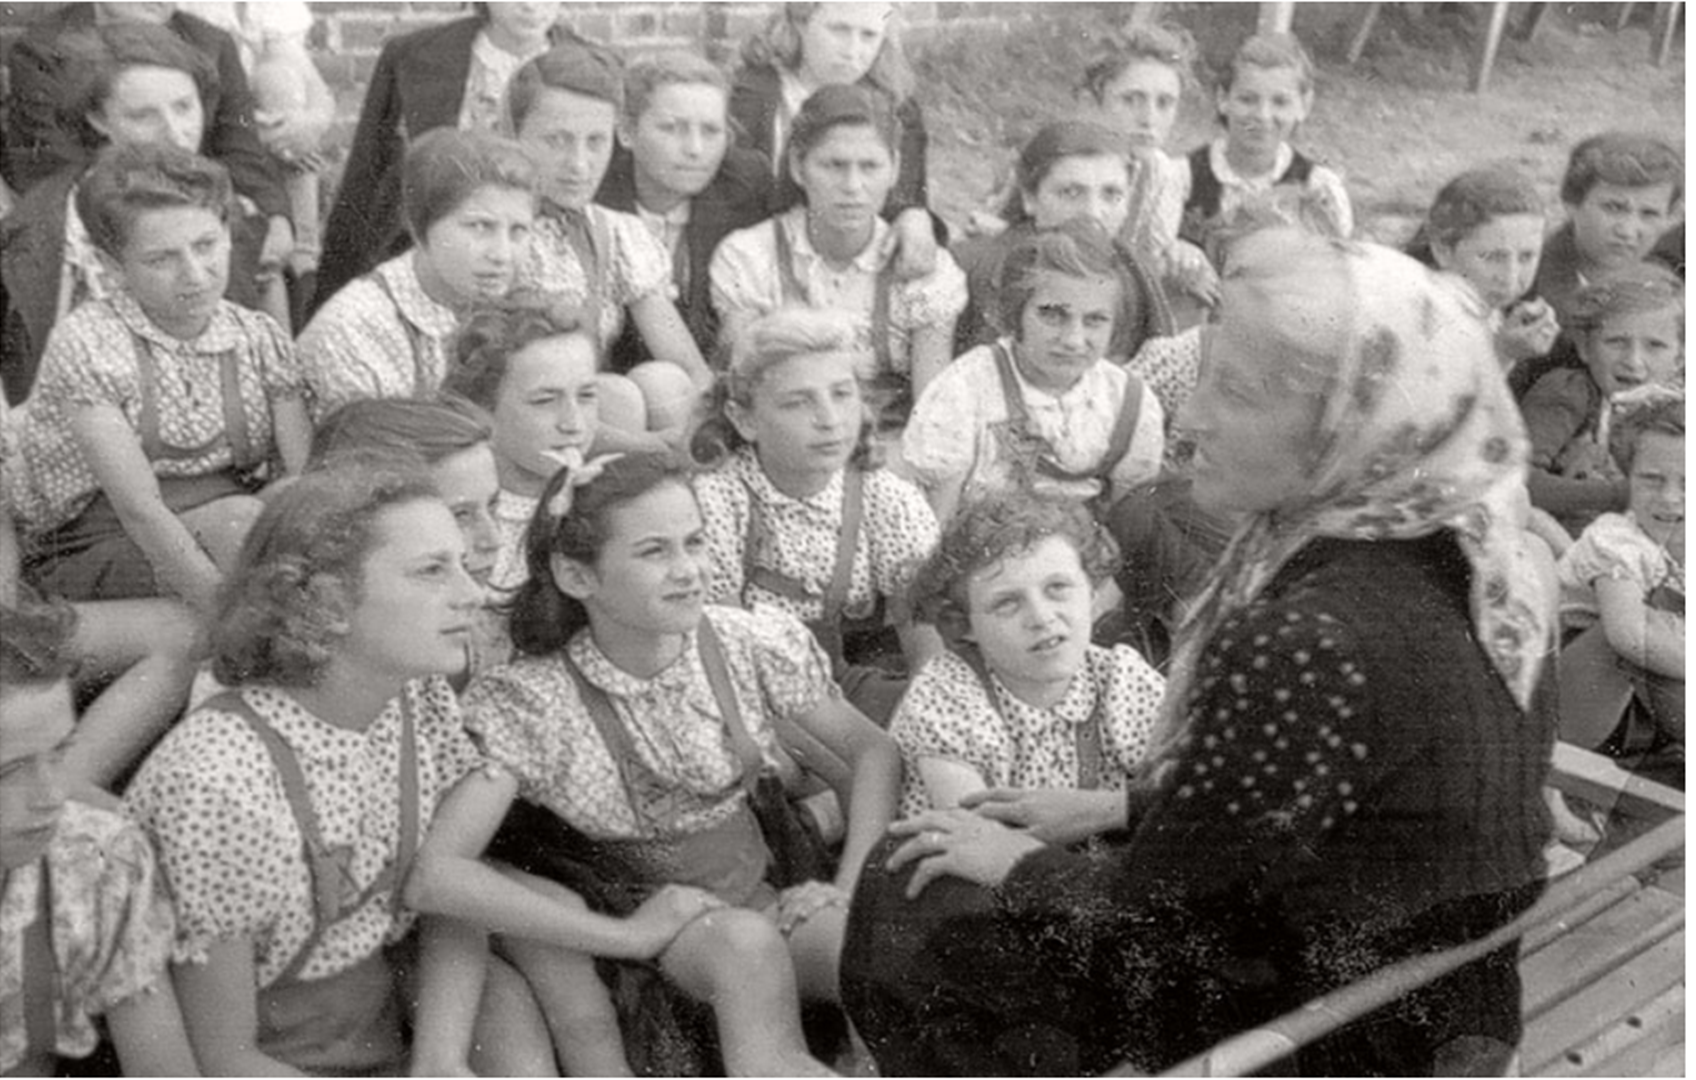 High School in the Lodz Ghetto